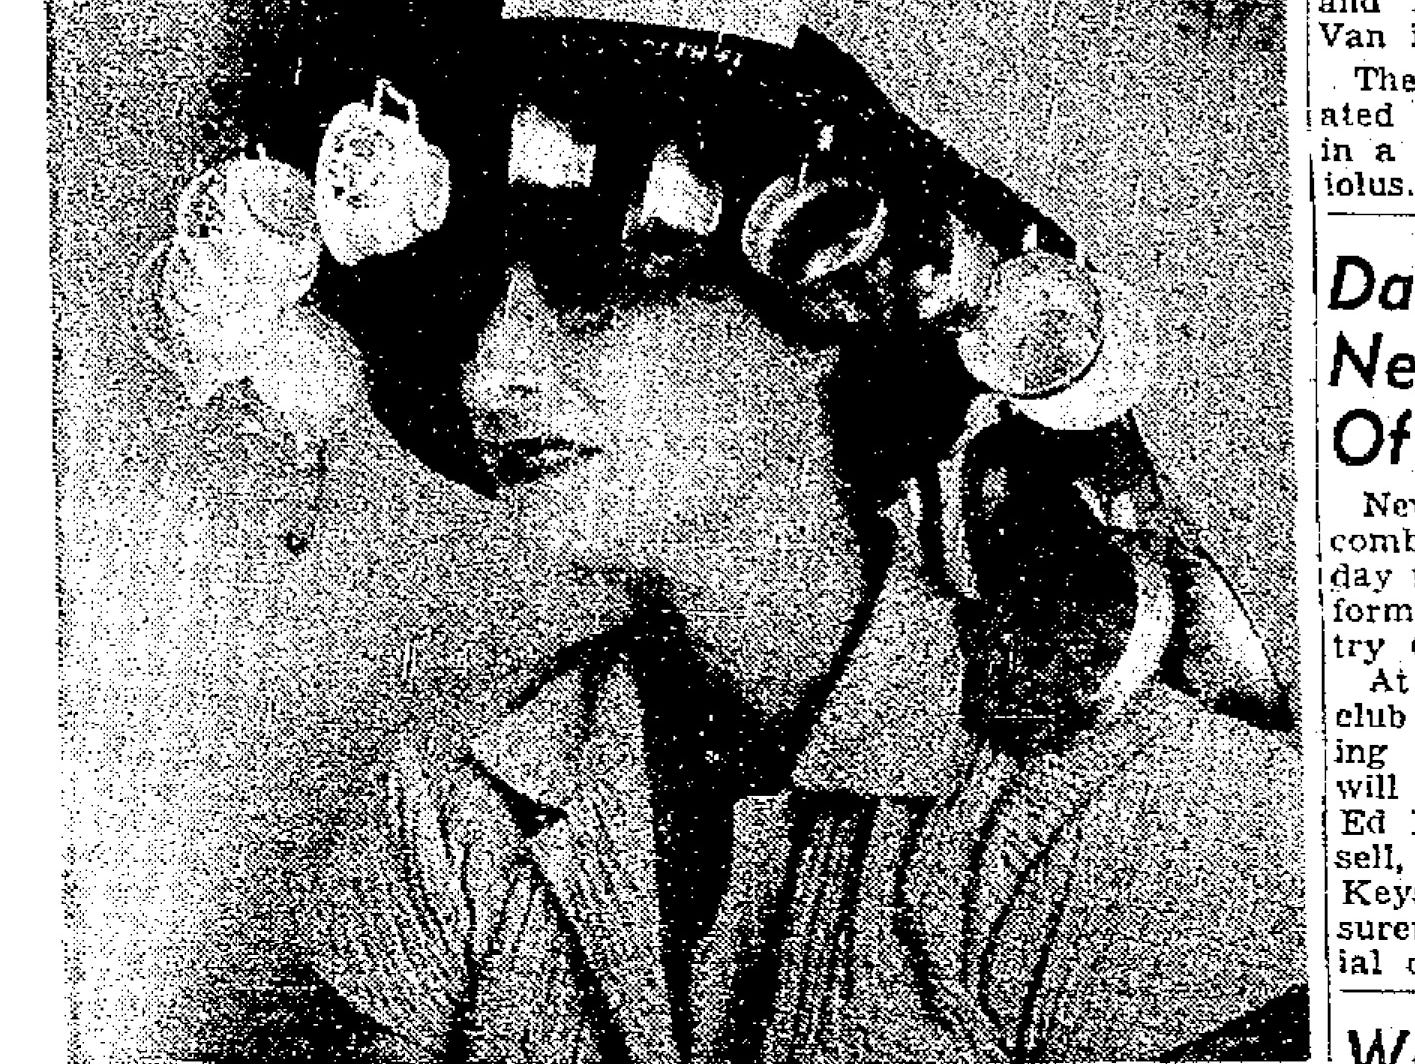 The Temple Beth El Sisterhood cookbook was incorporated into the winning hat design at a luncheon held by the Sisterheer. Mrs. Sidney Wolf, wife of Rabbi Sidney Wolf, designed and modeled the hat.